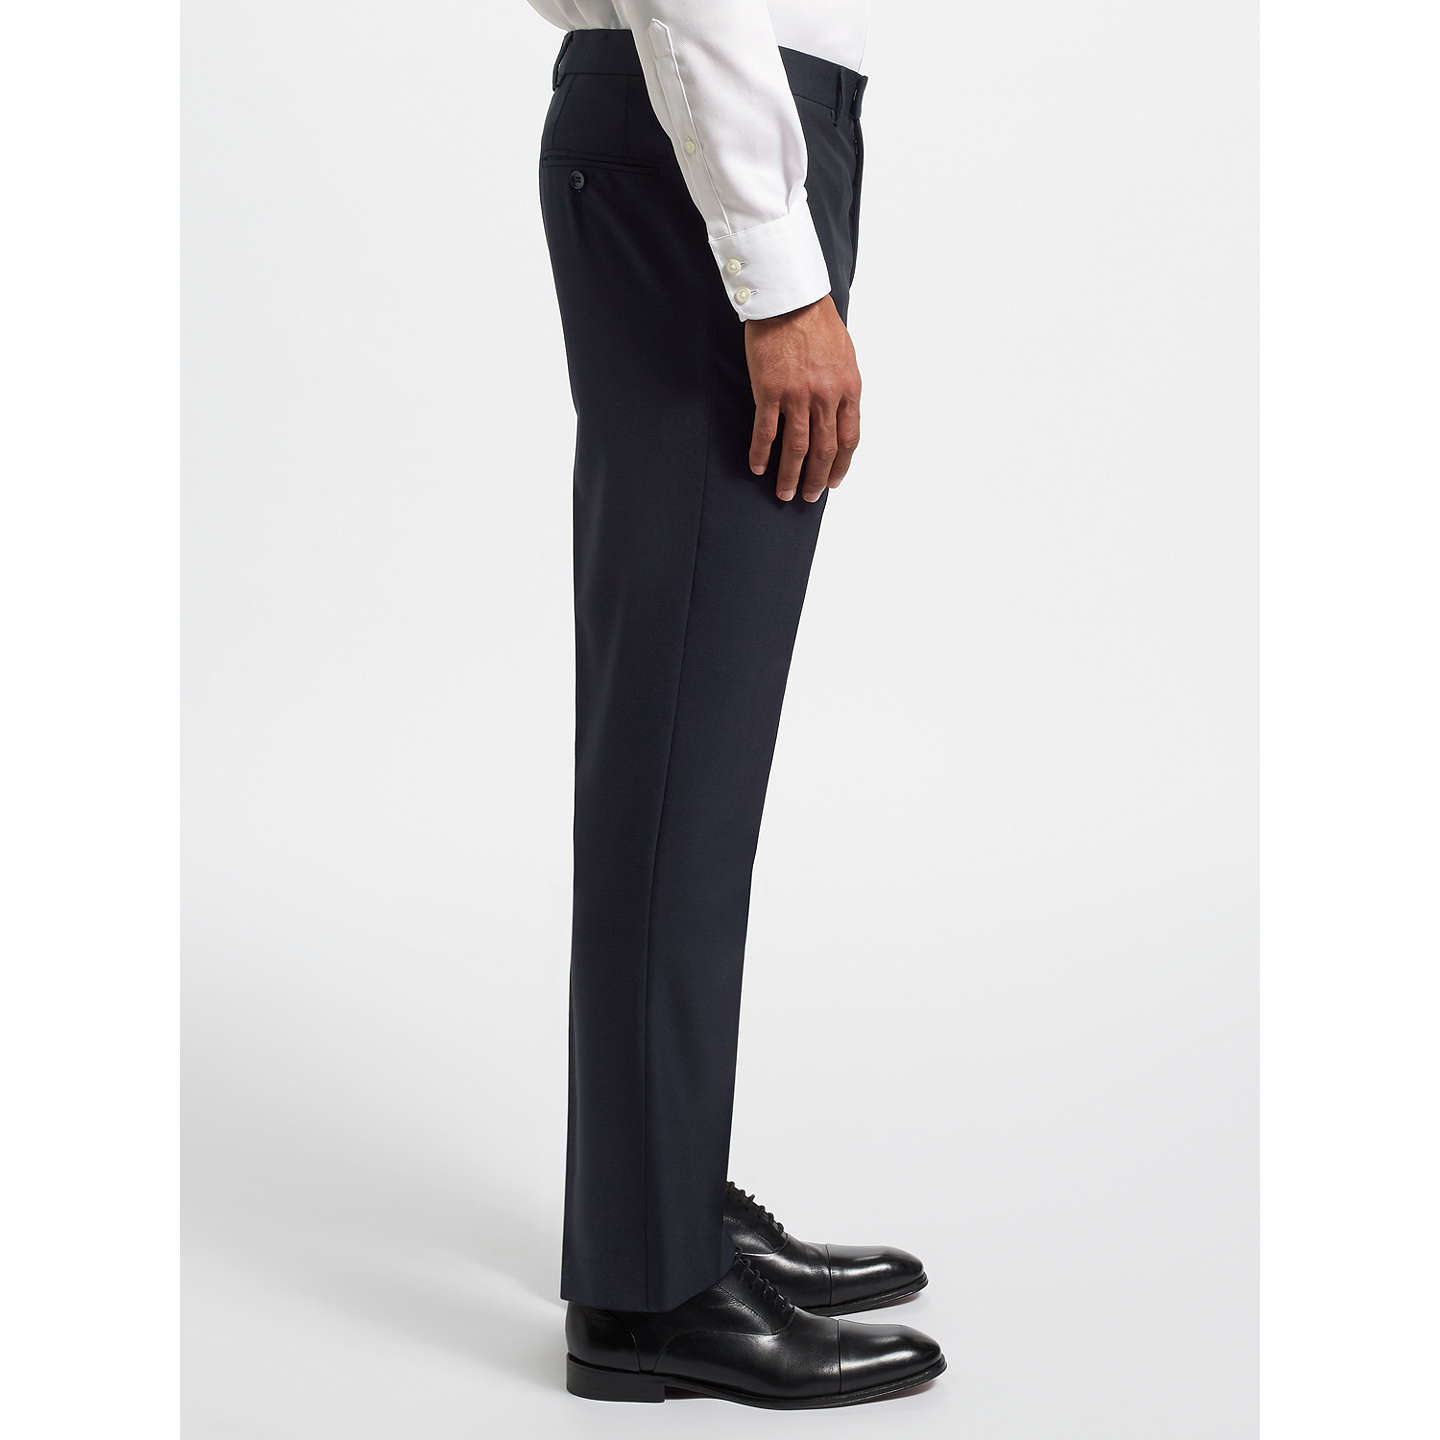 BuyJohn Lewis Ermenegildo Zegna Super 160s Wool Twill Tailored Suit Trousers, Navy, 32S Online at johnlewis.com